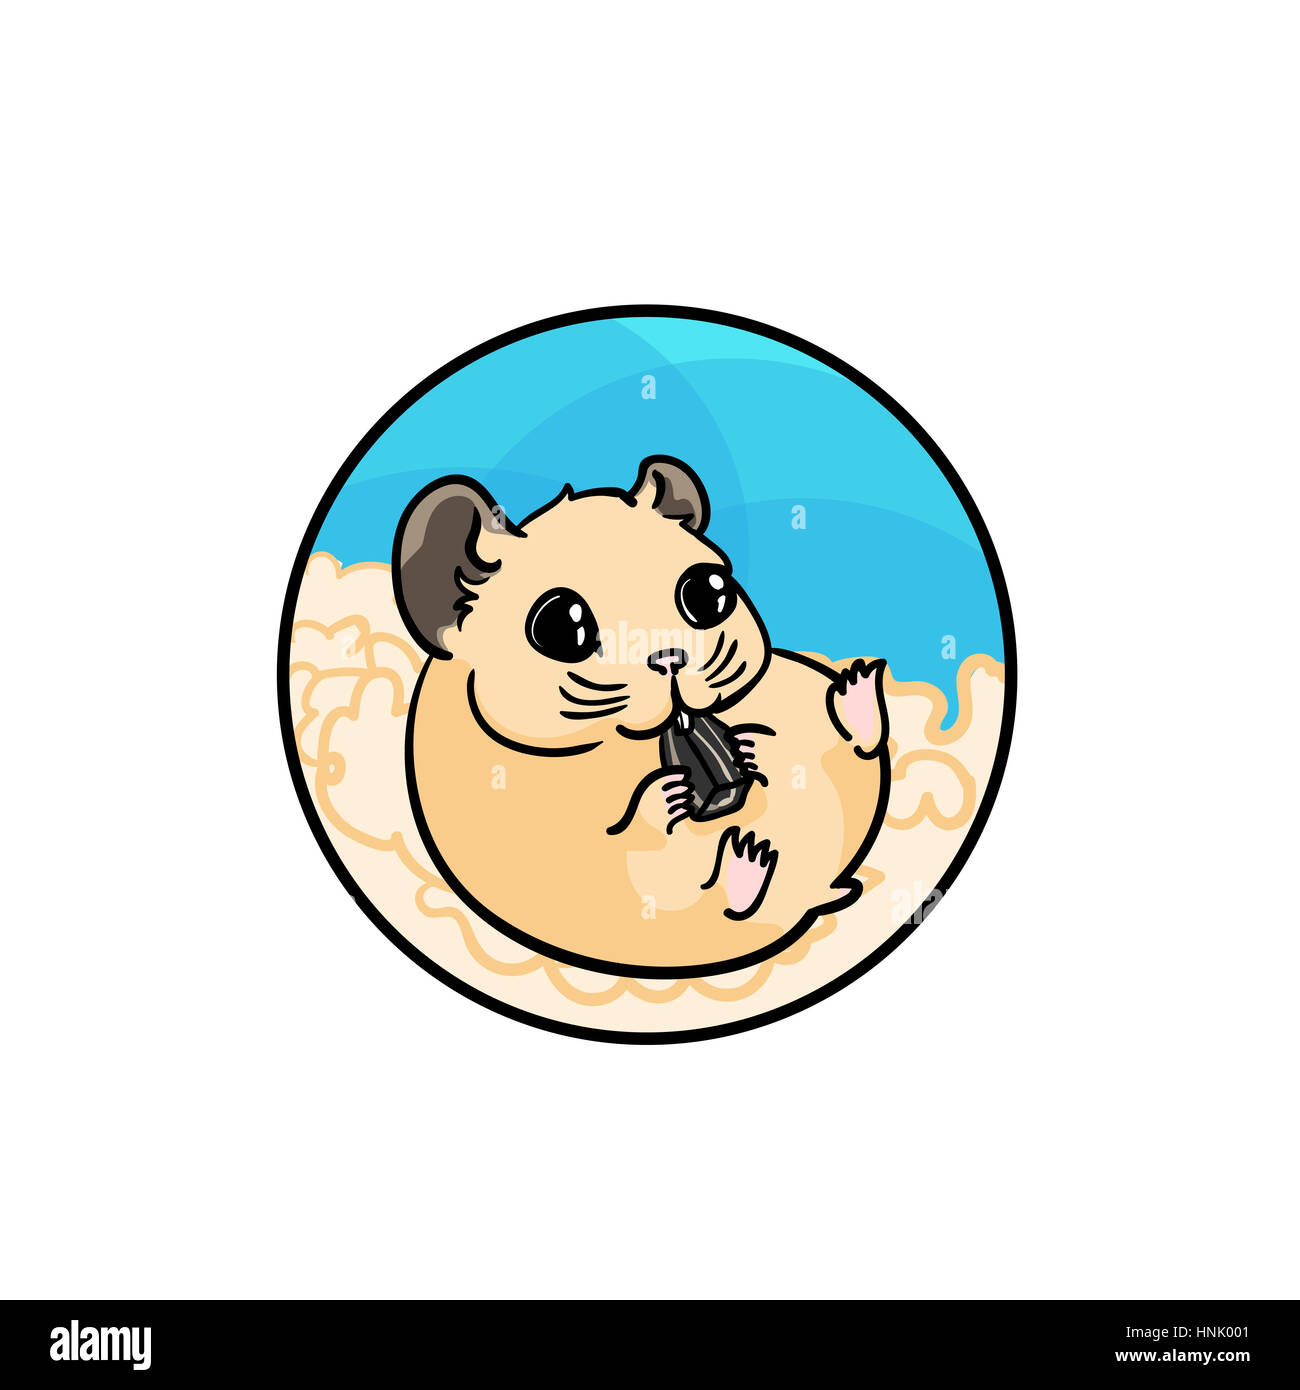 Syrian hamster eating sunflower seed. Animal art, cute cartoon style, hand drawn illustration. Suitable for pet - Stock Image